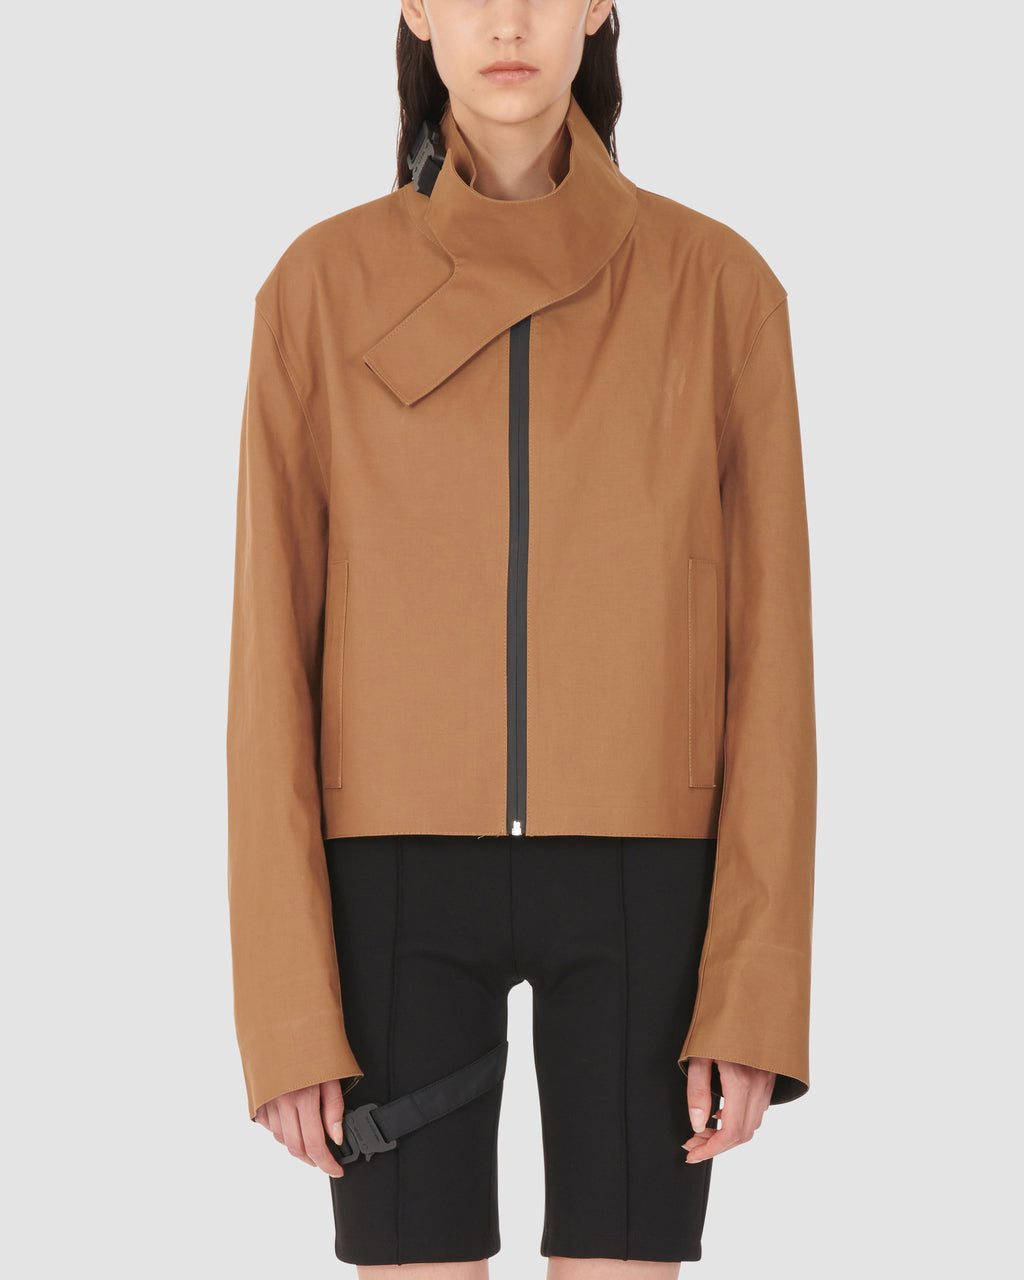 1017 ALYX 9SM | MACKINTOSH STAZIONE JACKET | Outerwear | Google Shopping, Mackintosh, Man, OUTERWEAR, S20, TAN, UNISEX